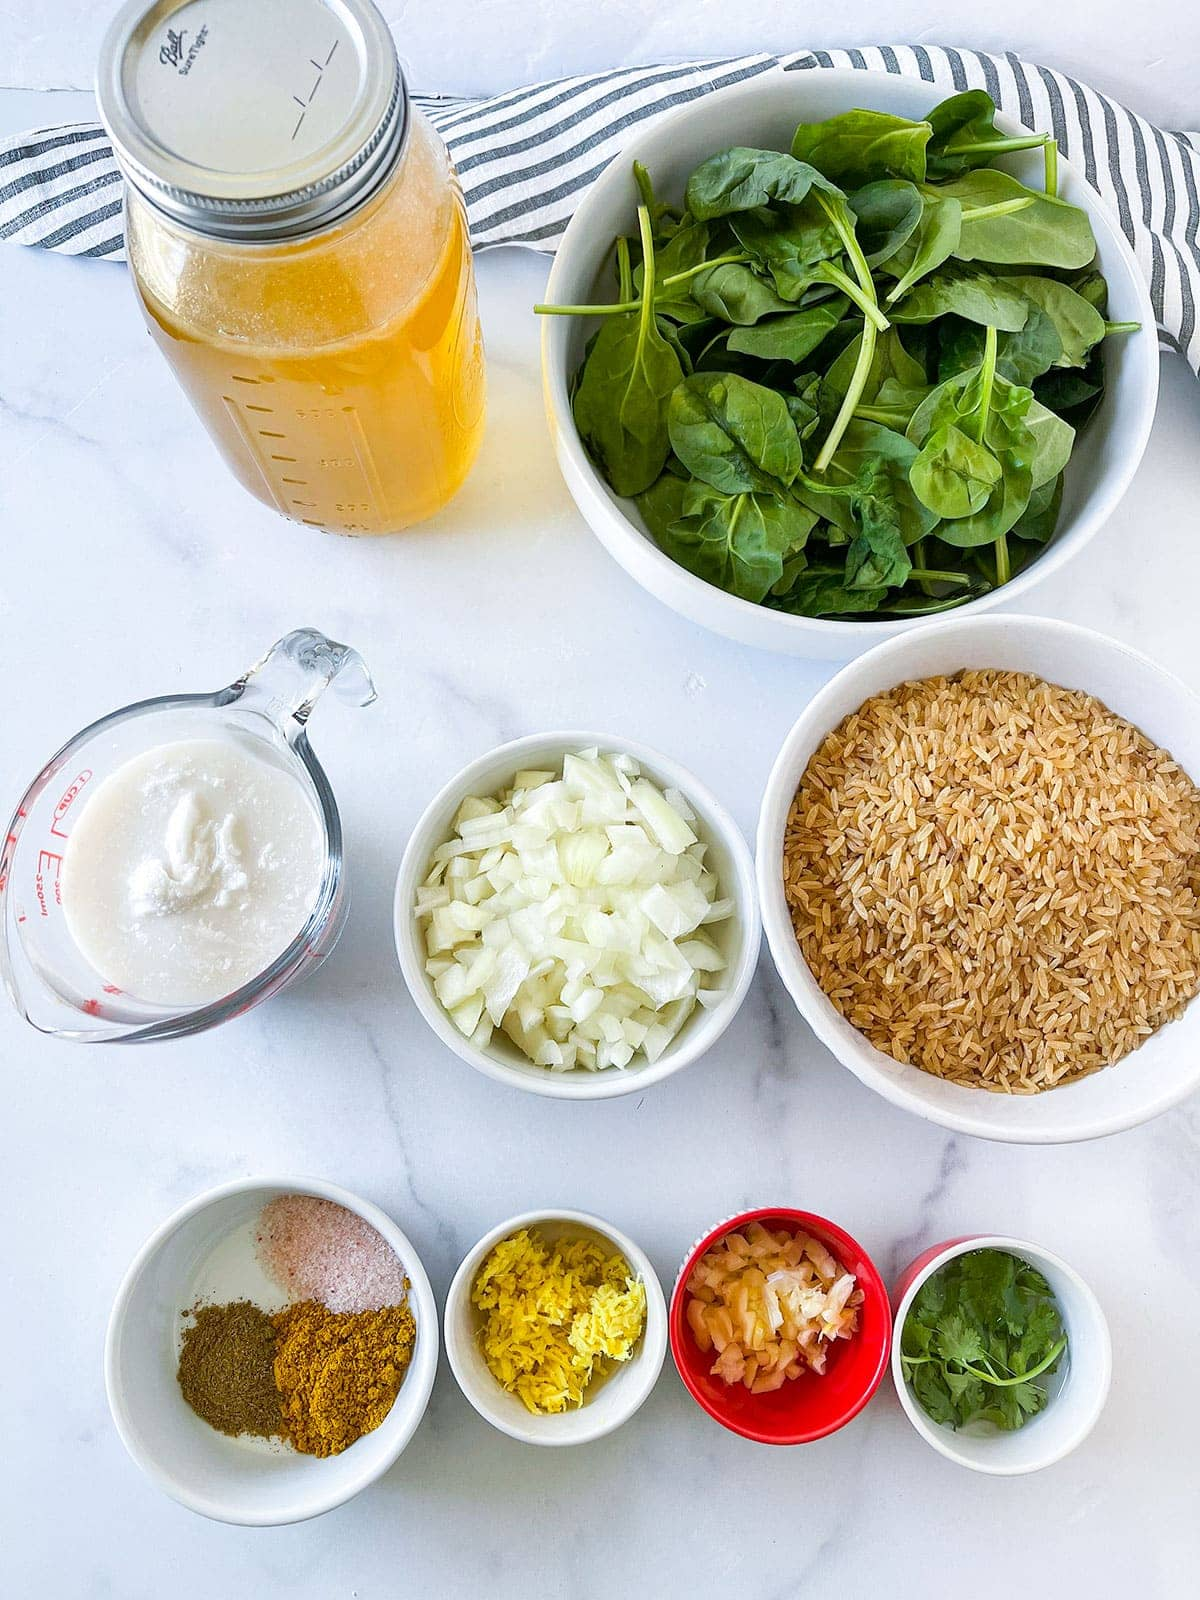 Spinach rice ingredients on a white background